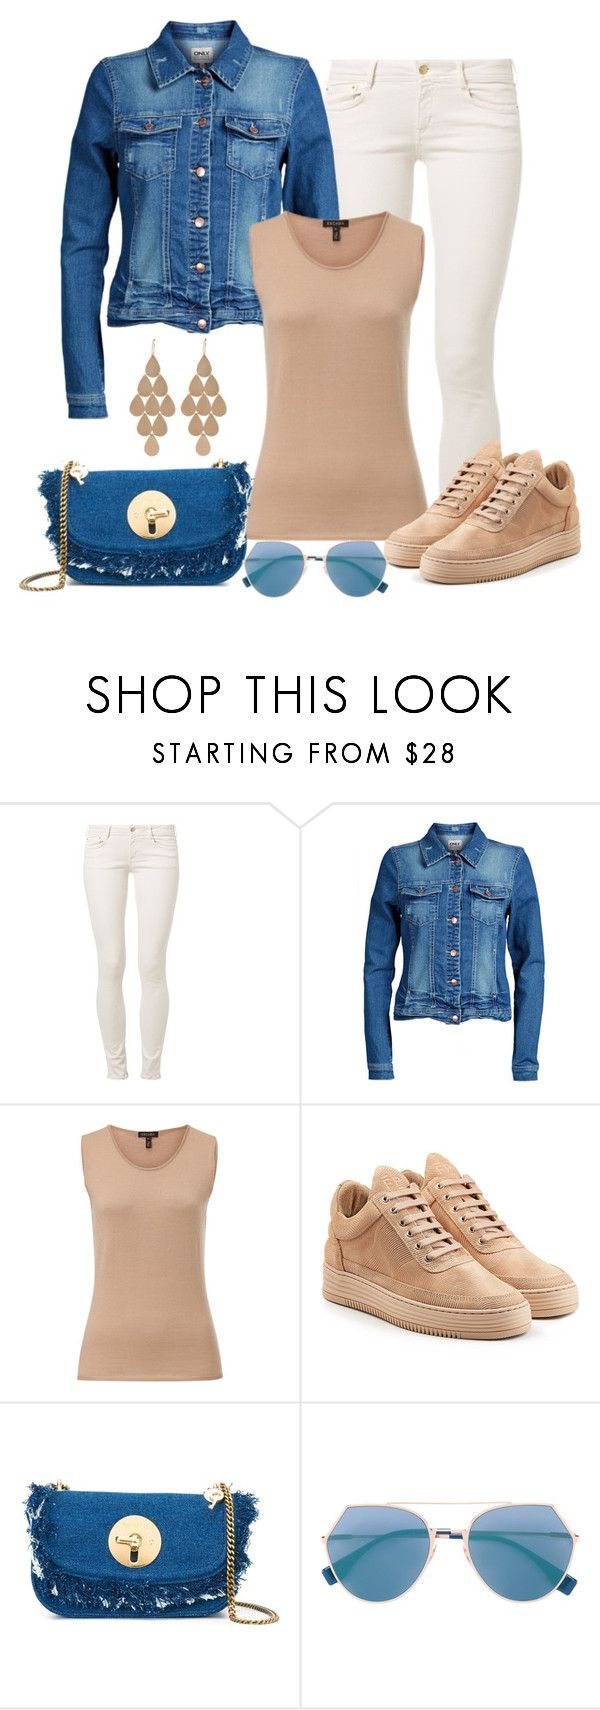 """""""Untitled #1486"""" by gallant81 ❤ liked on Polyvore featuring CIMARRON, ONLY, ESCADA, Filling Pieces and Irene Neuwirth"""